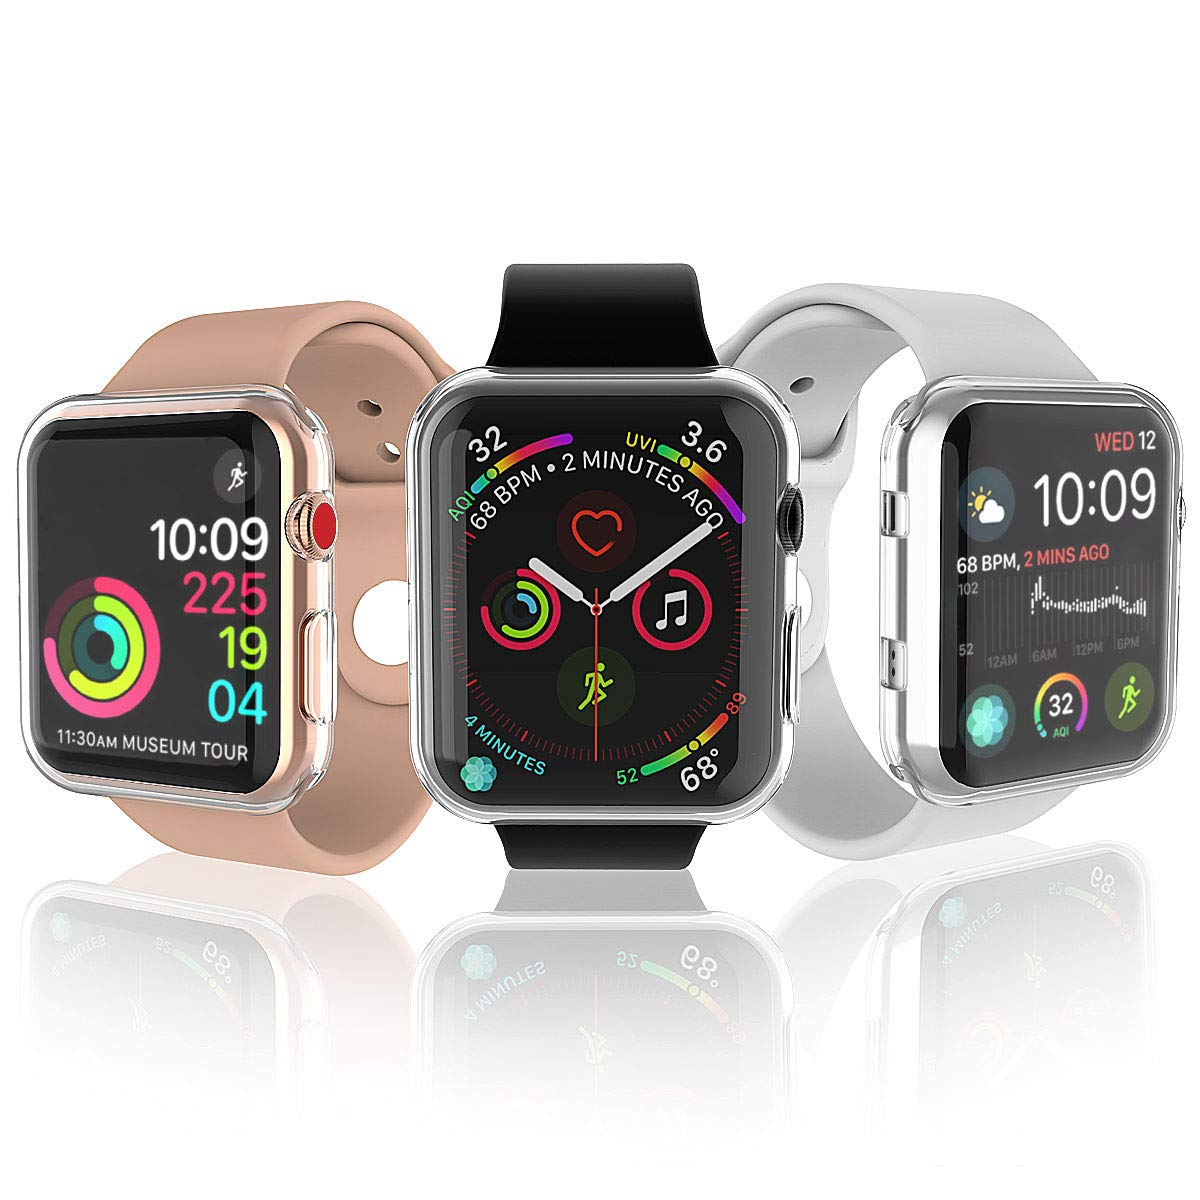 Amazon.com: Julk - Estuche para reloj Apple Series 3 de 38 ...